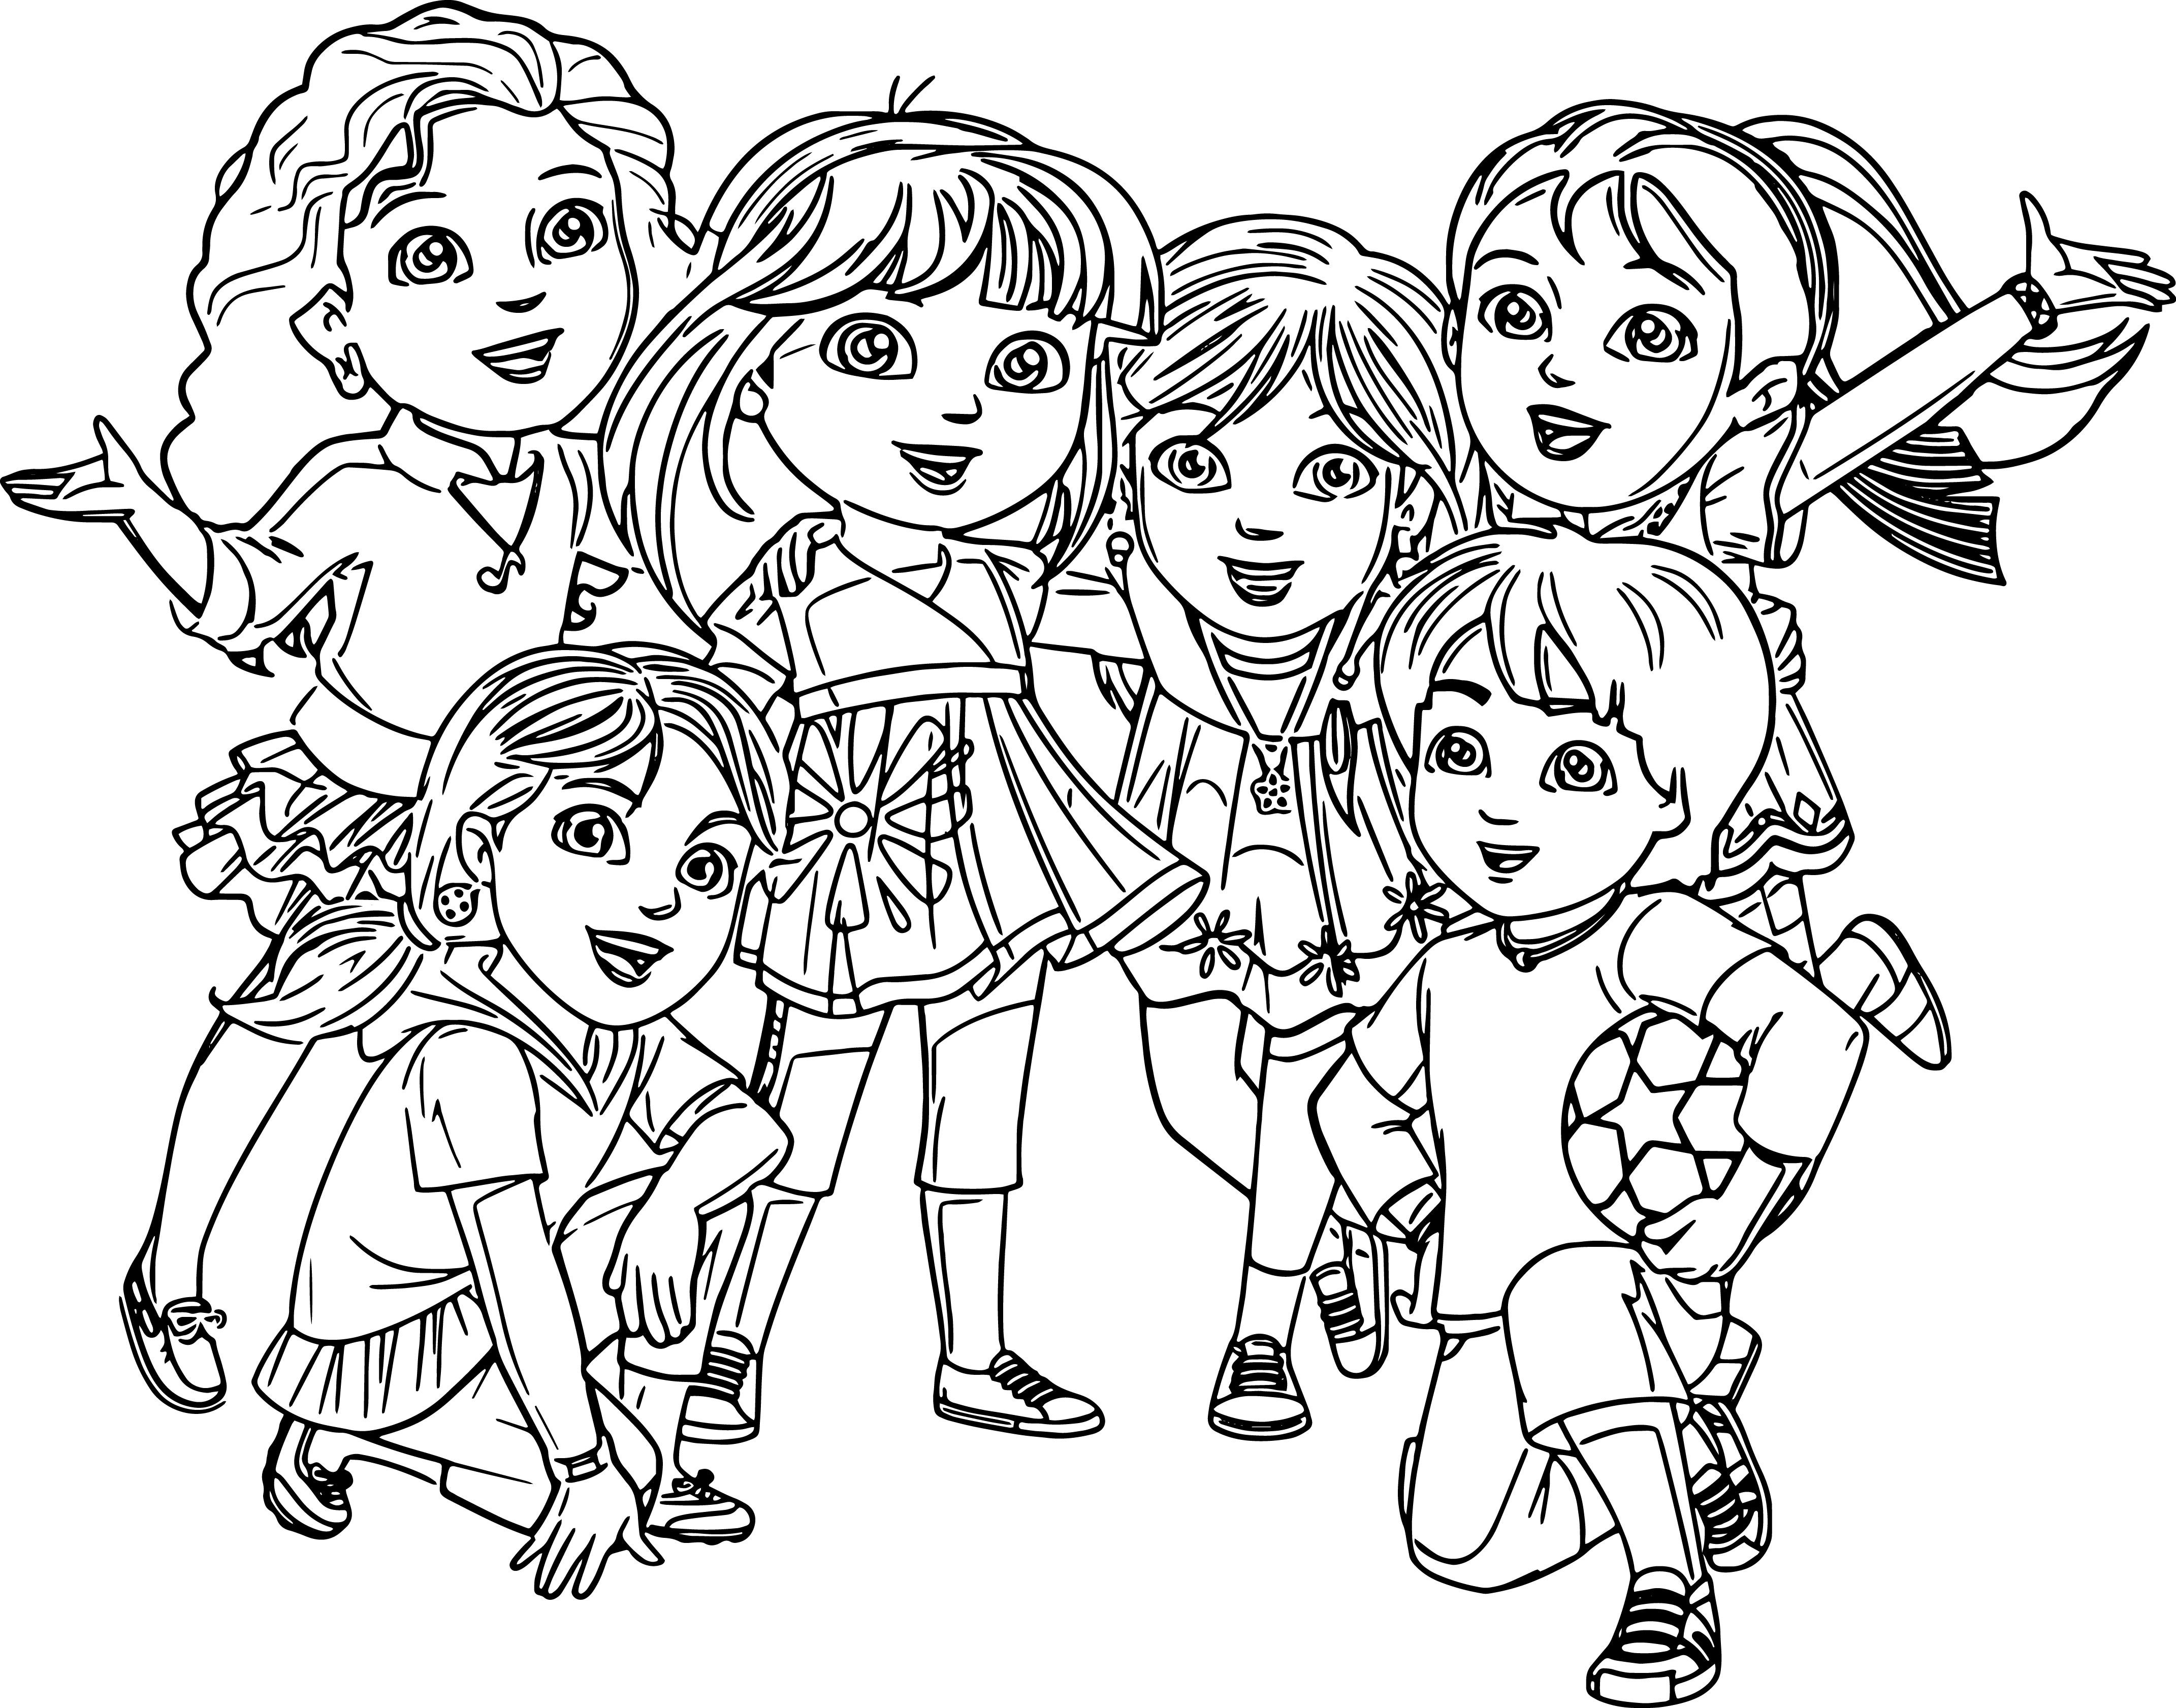 Pg 18 And 19 Dora And Friends Coloring Page Malvorlagen Bibel Malvorlagen Mandala Malvorlagen